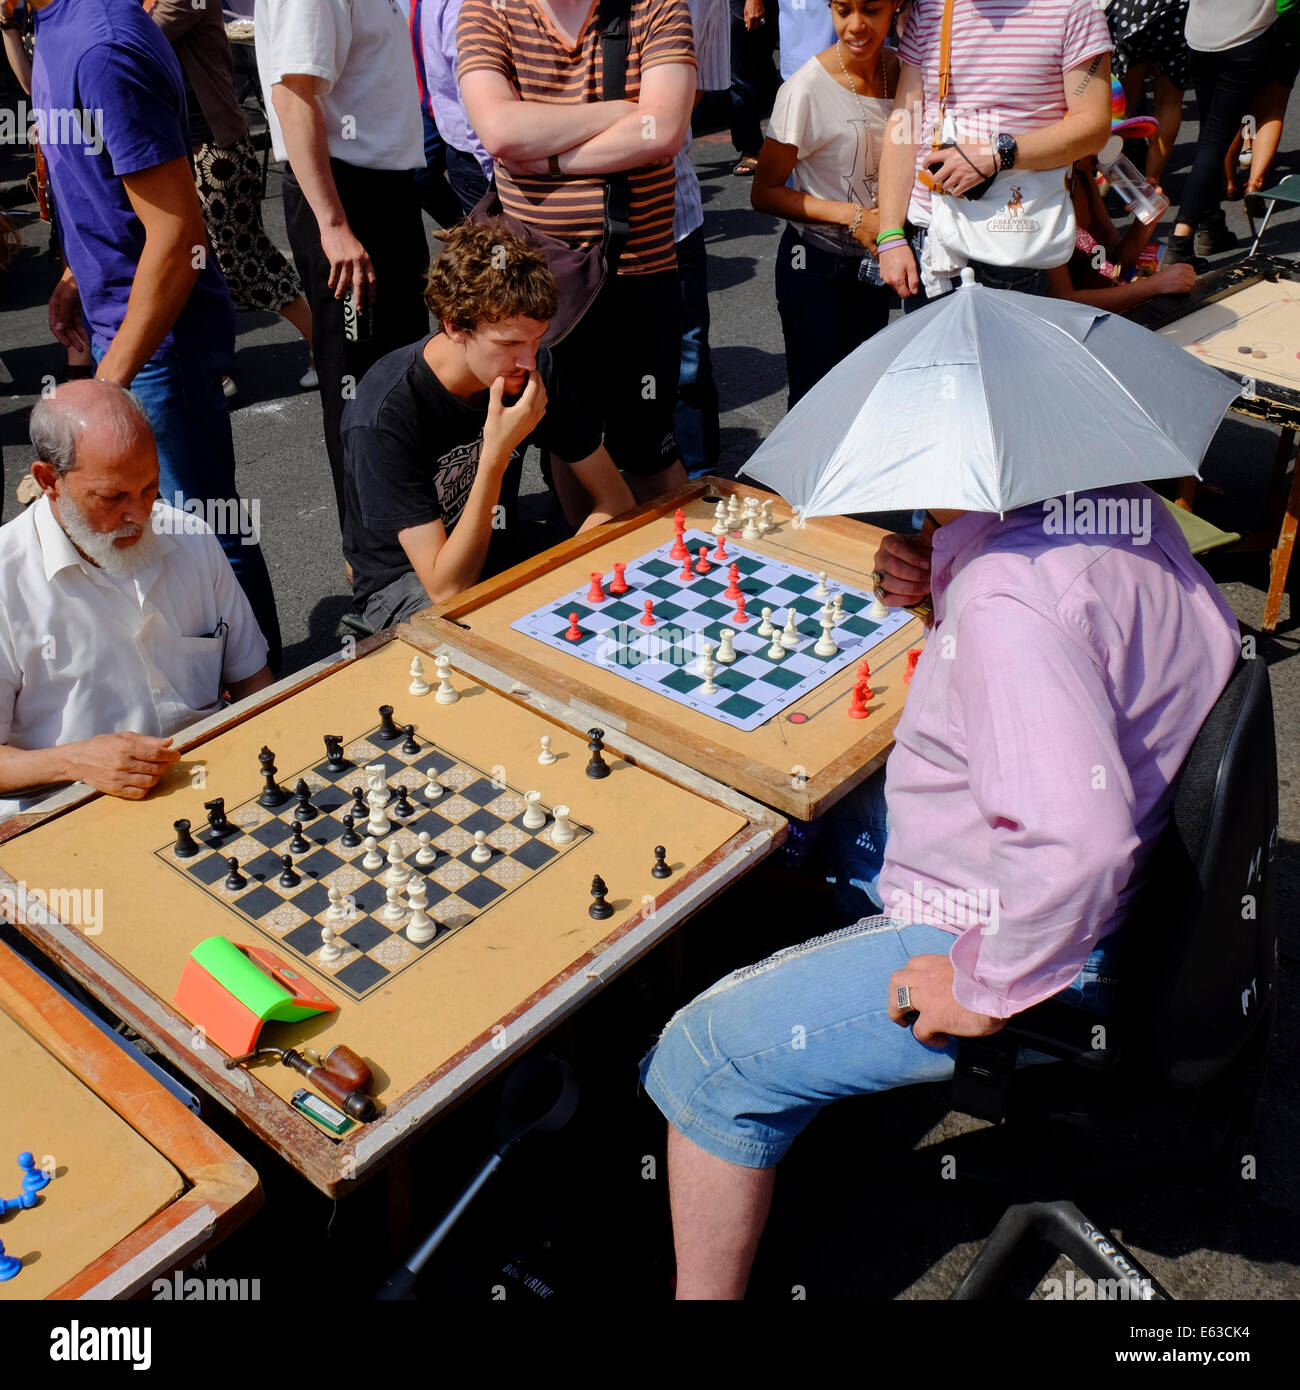 man playing chess against several opponents at the same time on Brick lane, Shoreditch, London, England - Stock Image